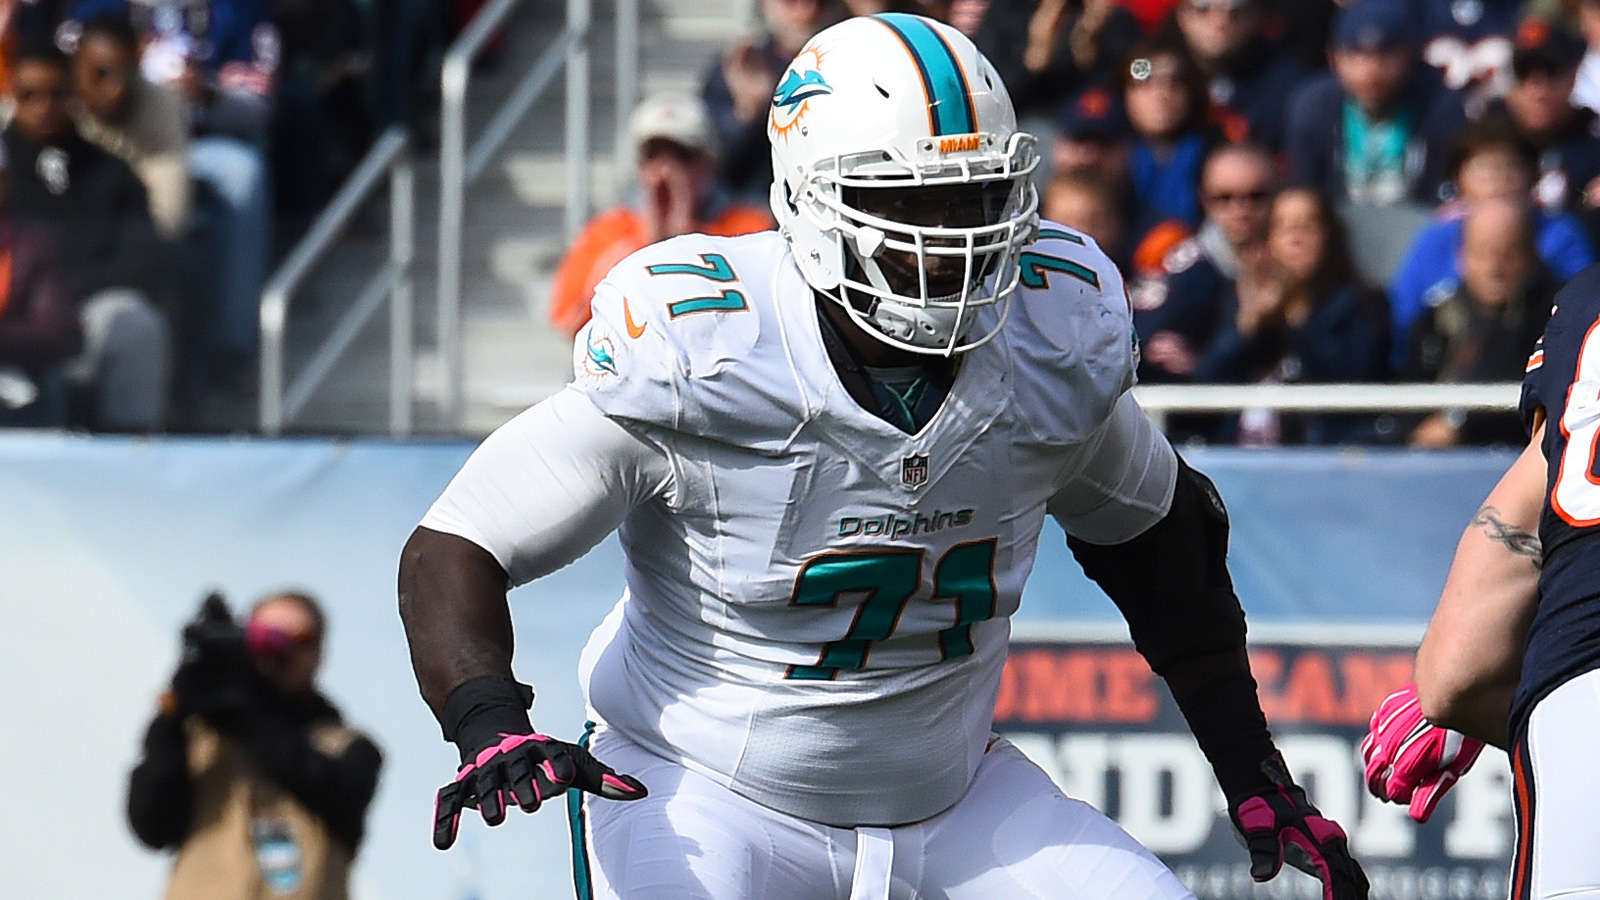 Albert released by Dolphins; Tunsil to move to tackle